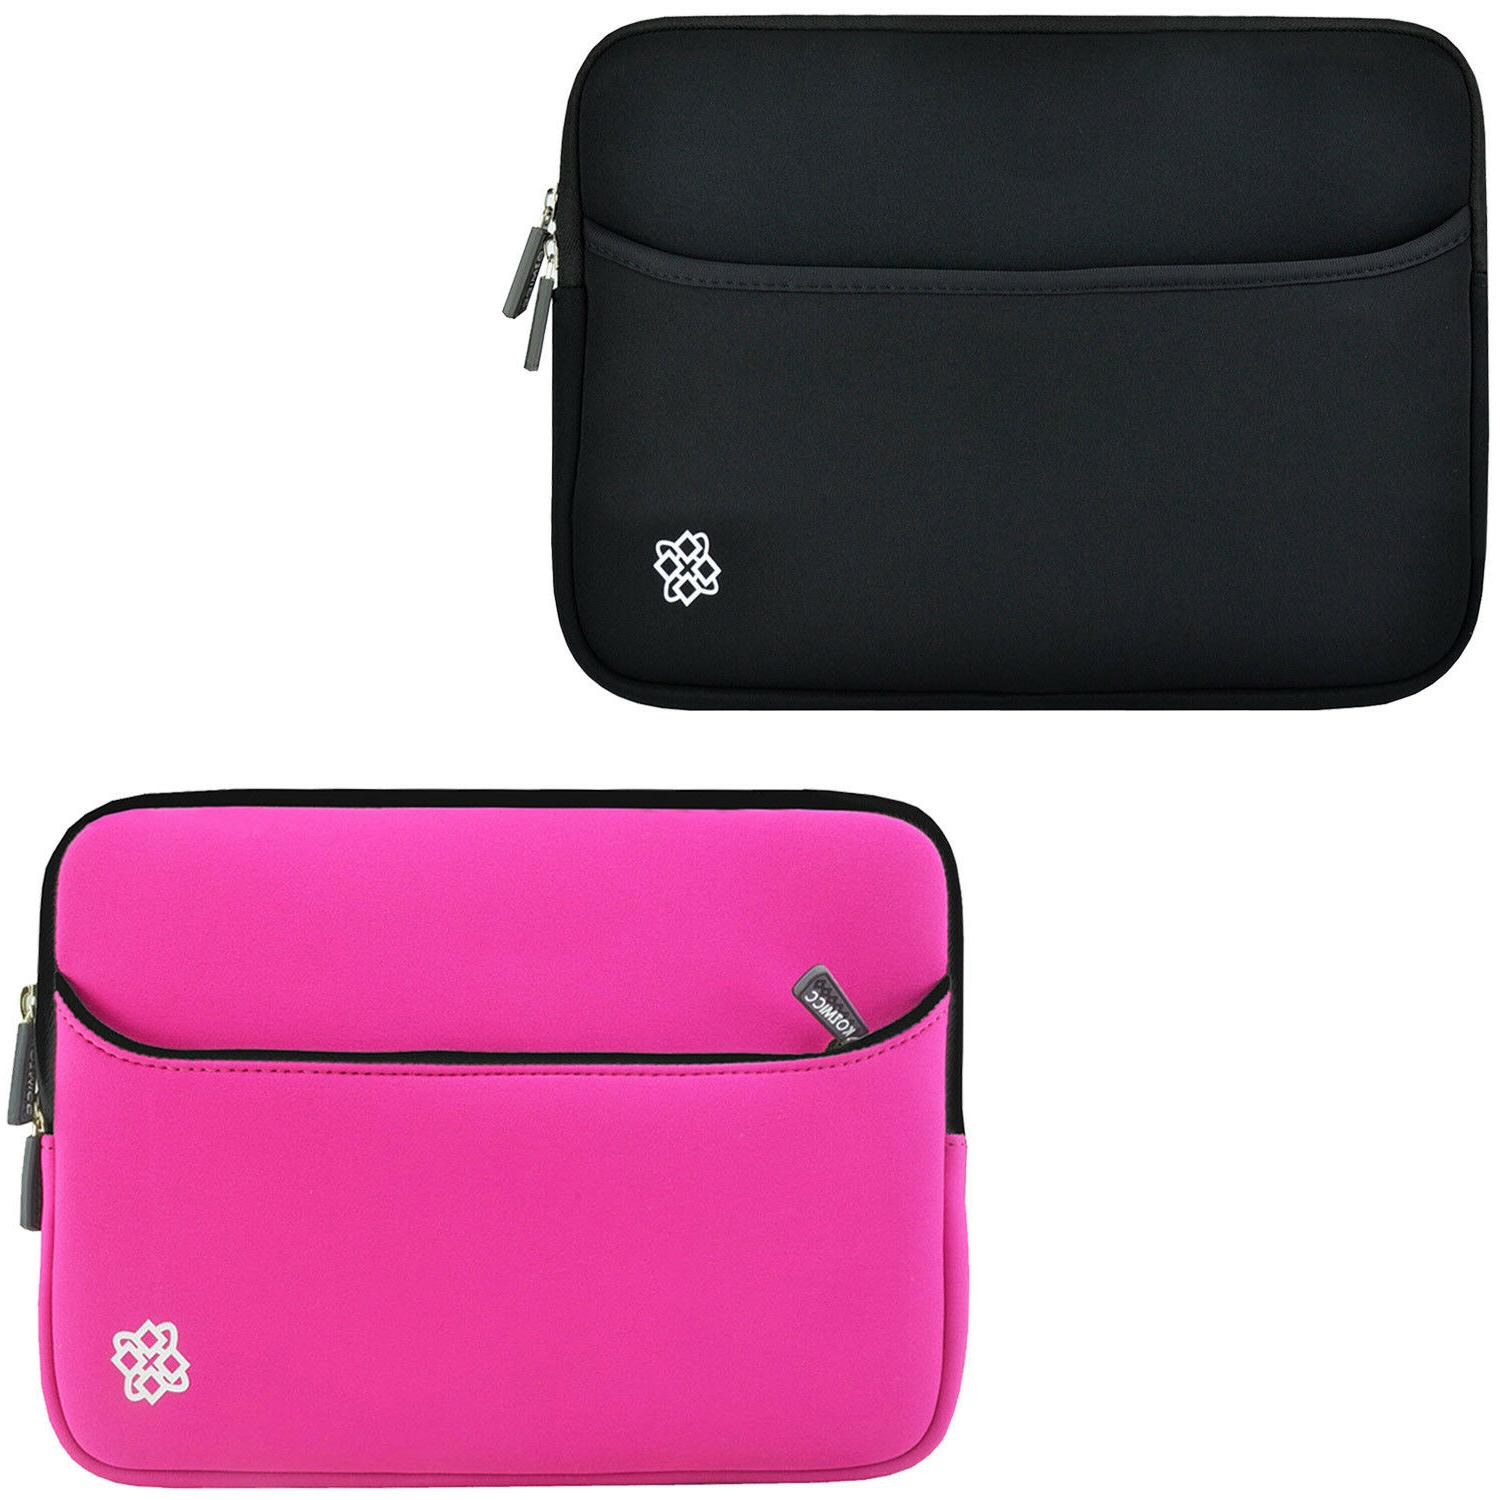 neoprene pencil pen case cosmetic makeup bag